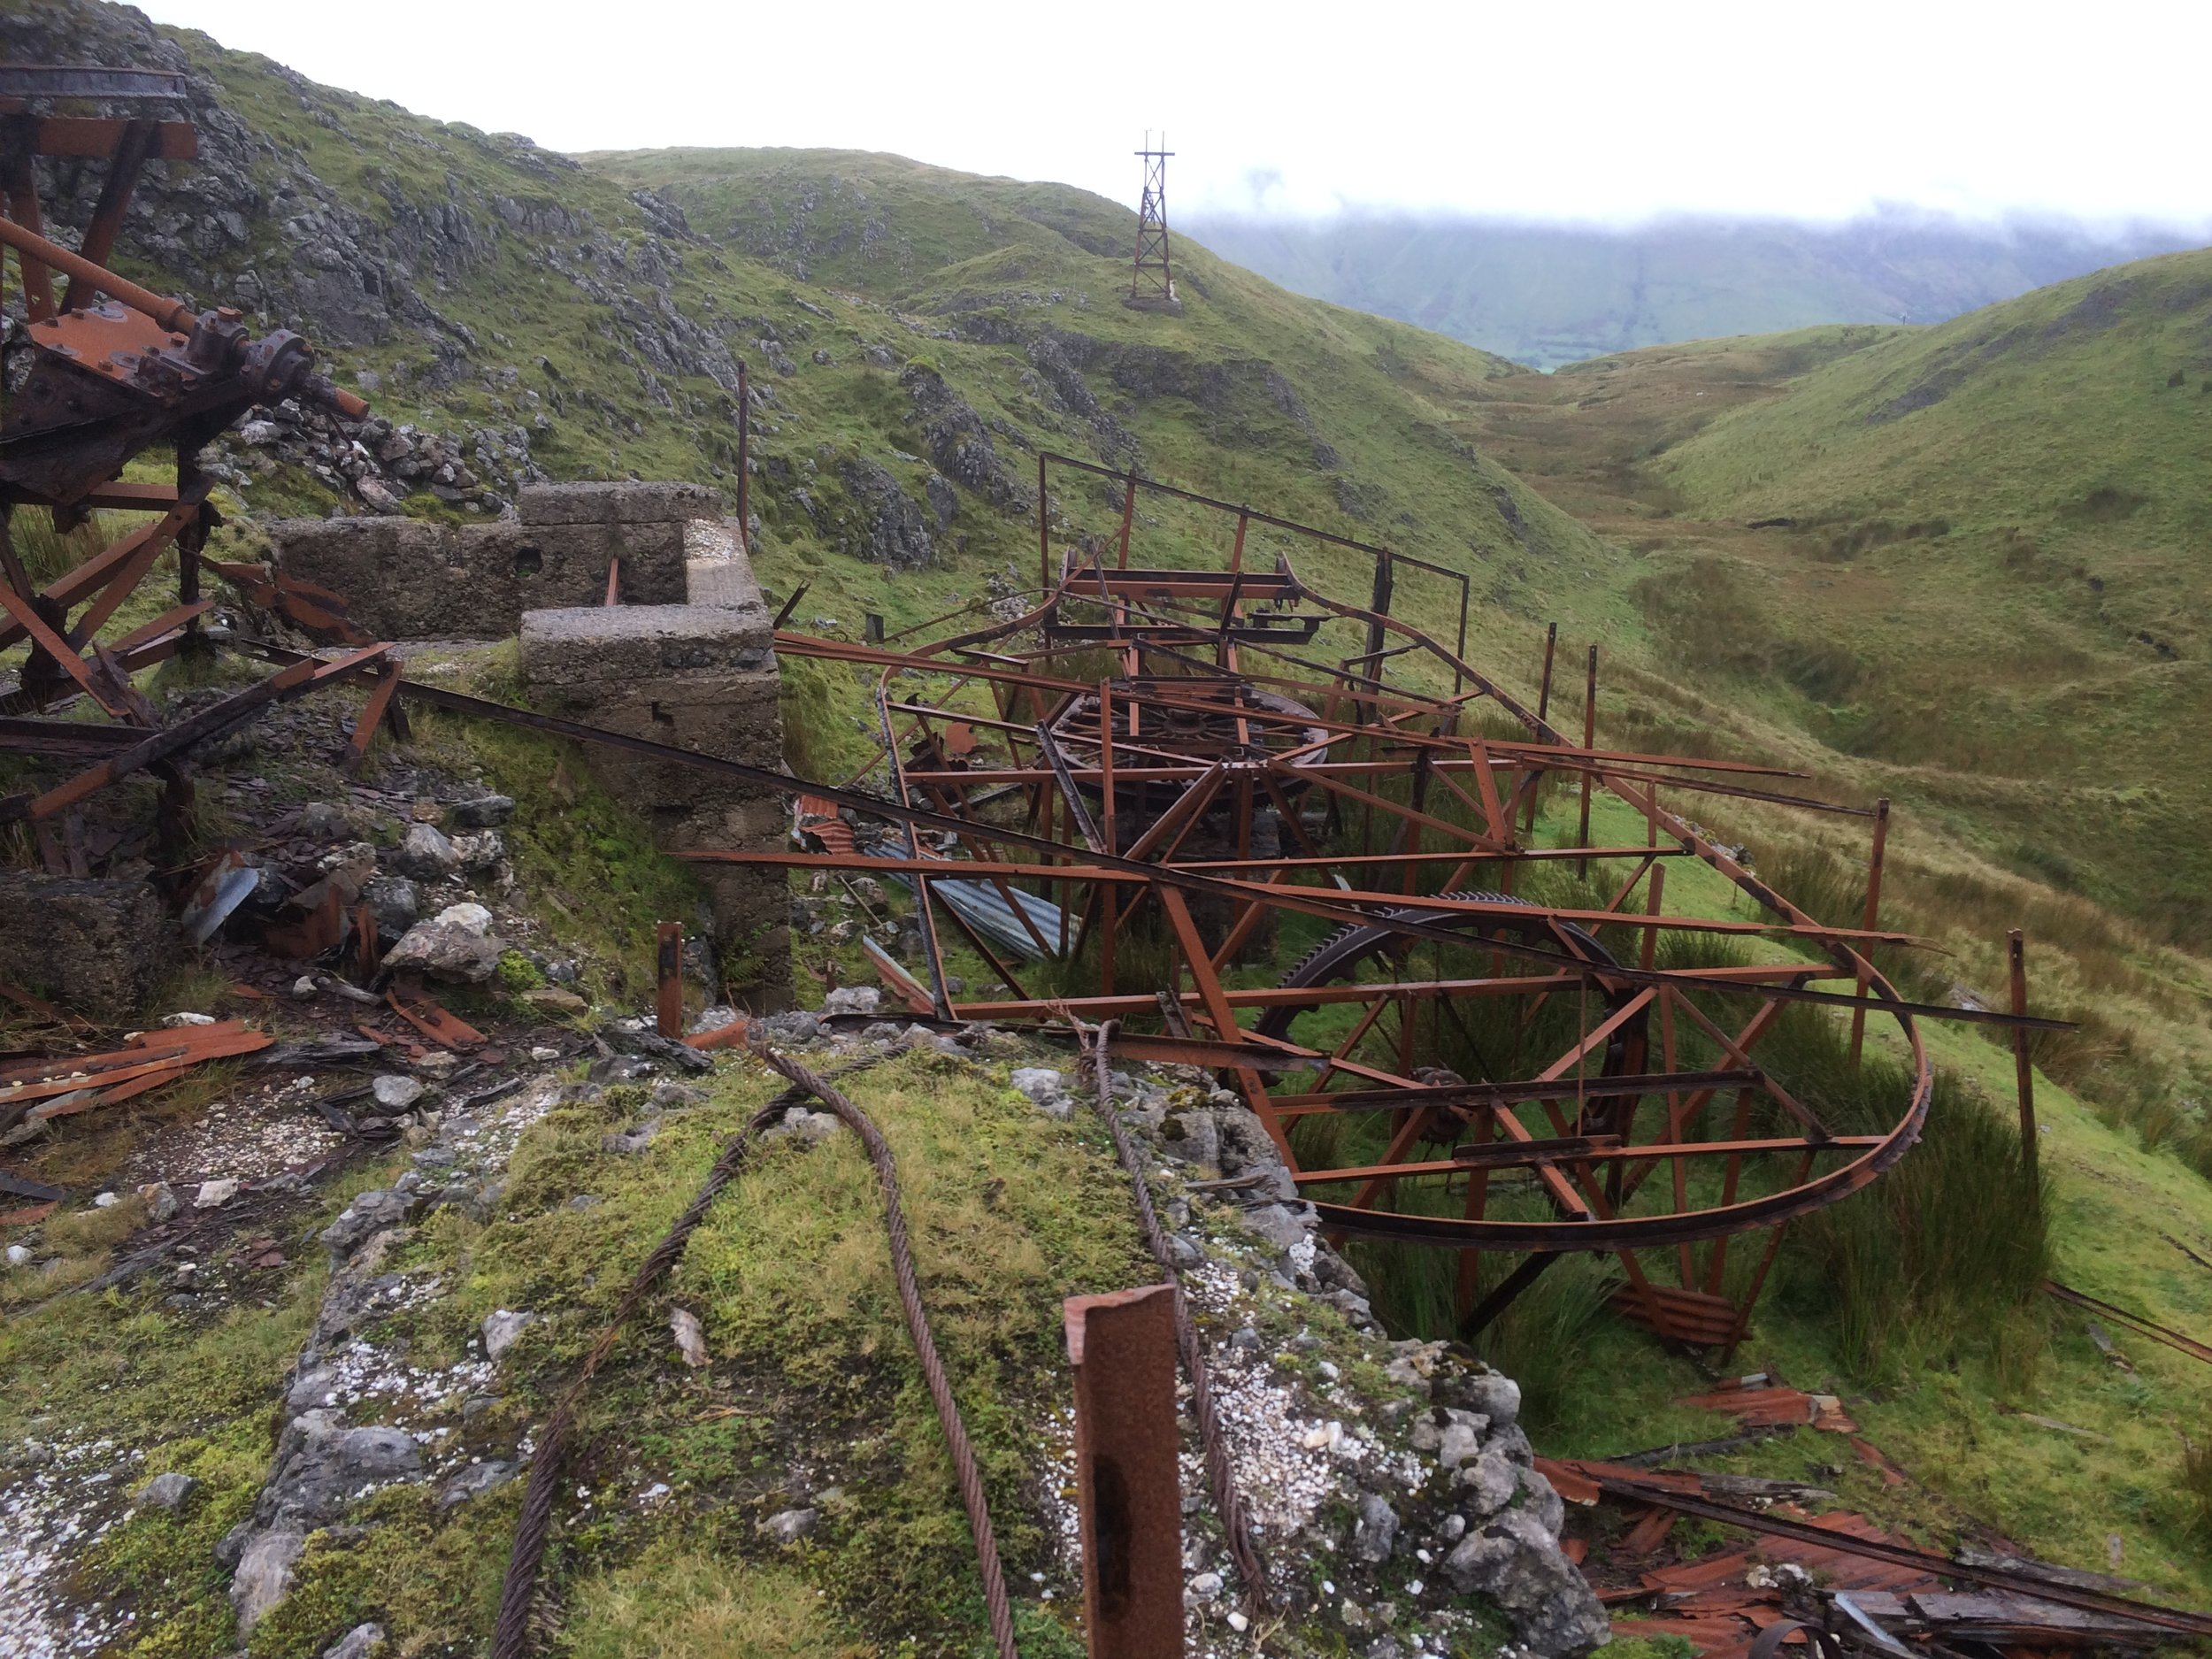 Old Barytes Mines at Glencarbury. This pulley system was used to transport the Barytes in buckets to the Glencar Valley for further processing.